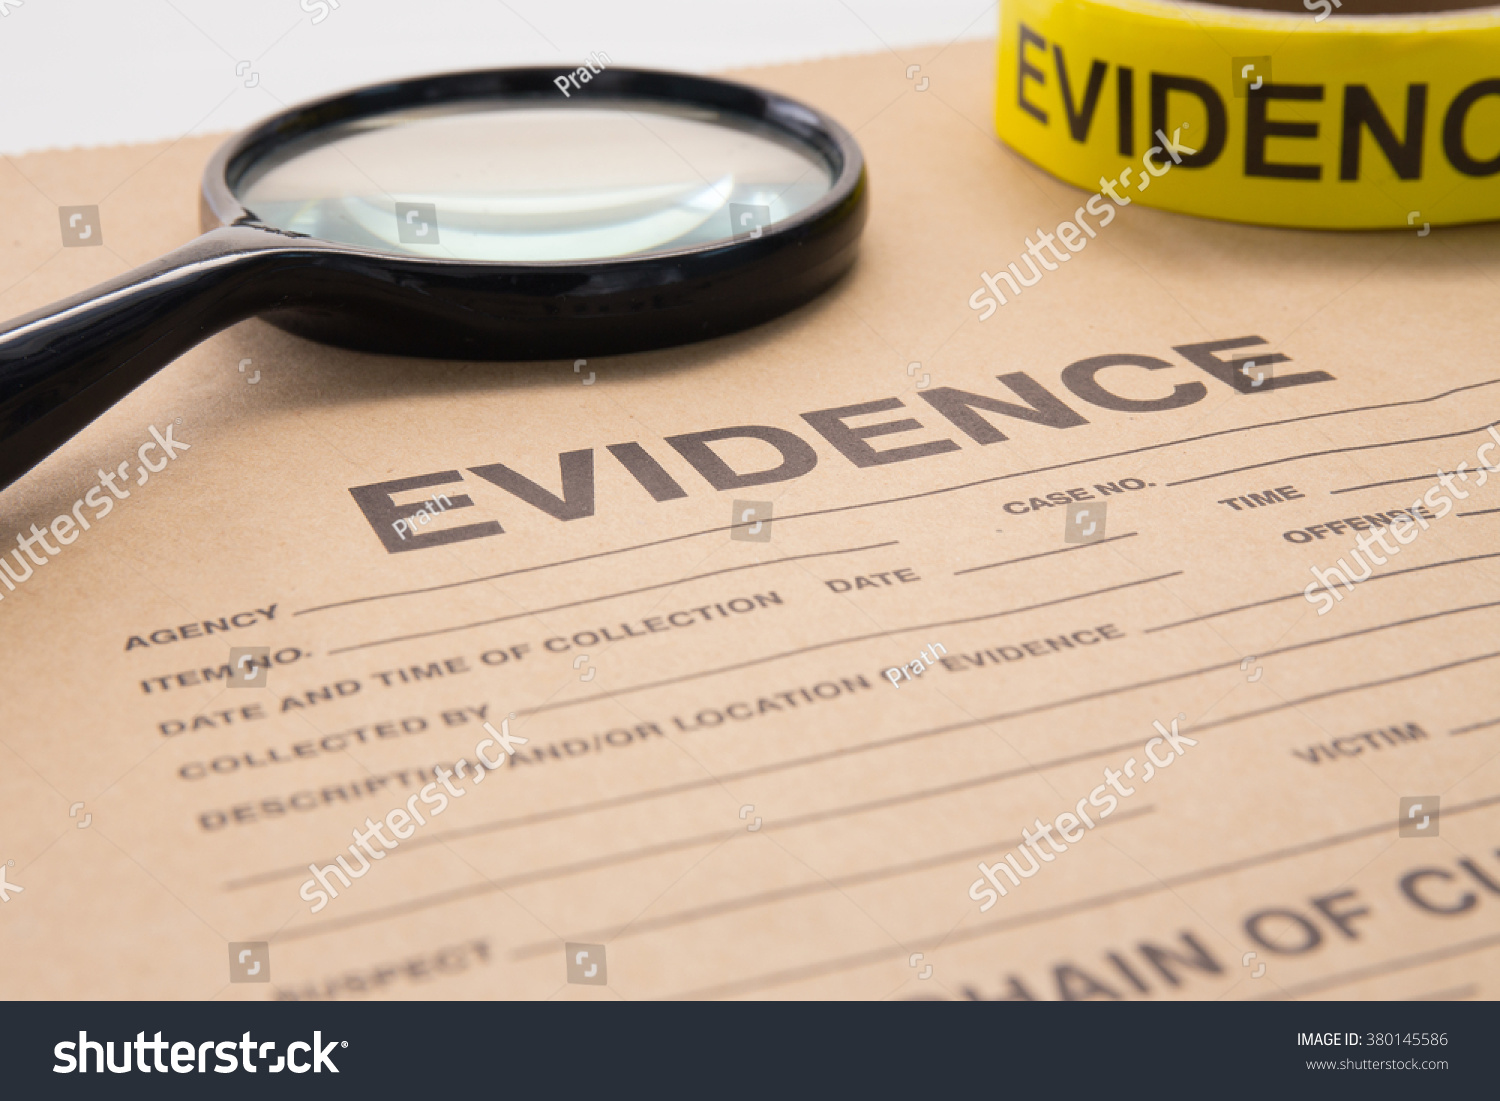 financial detective, 1996 essay 15 detectives credited with solving the biggest cases in history everywhere you look, whether it be bookstores, media, television shows, or movies, you can find some story about a detective or crime solving.